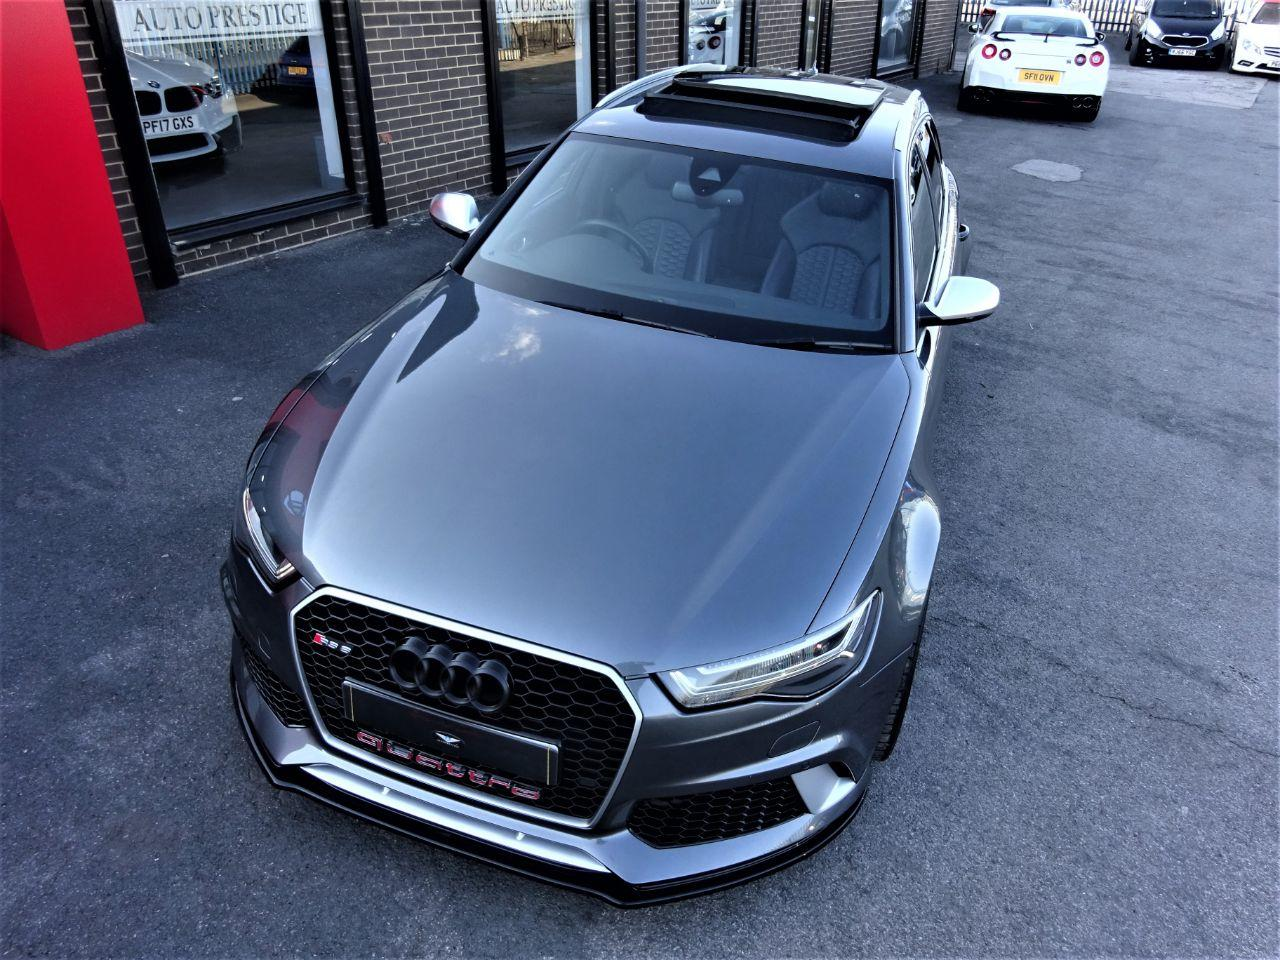 Audi RS6 4.0 TFSI Avant WITH ALUMINIUM PACK LOW MILEAGE WITH EXTRAS PAN ROOF Estate Petrol Grey at Autoprestige Bradford